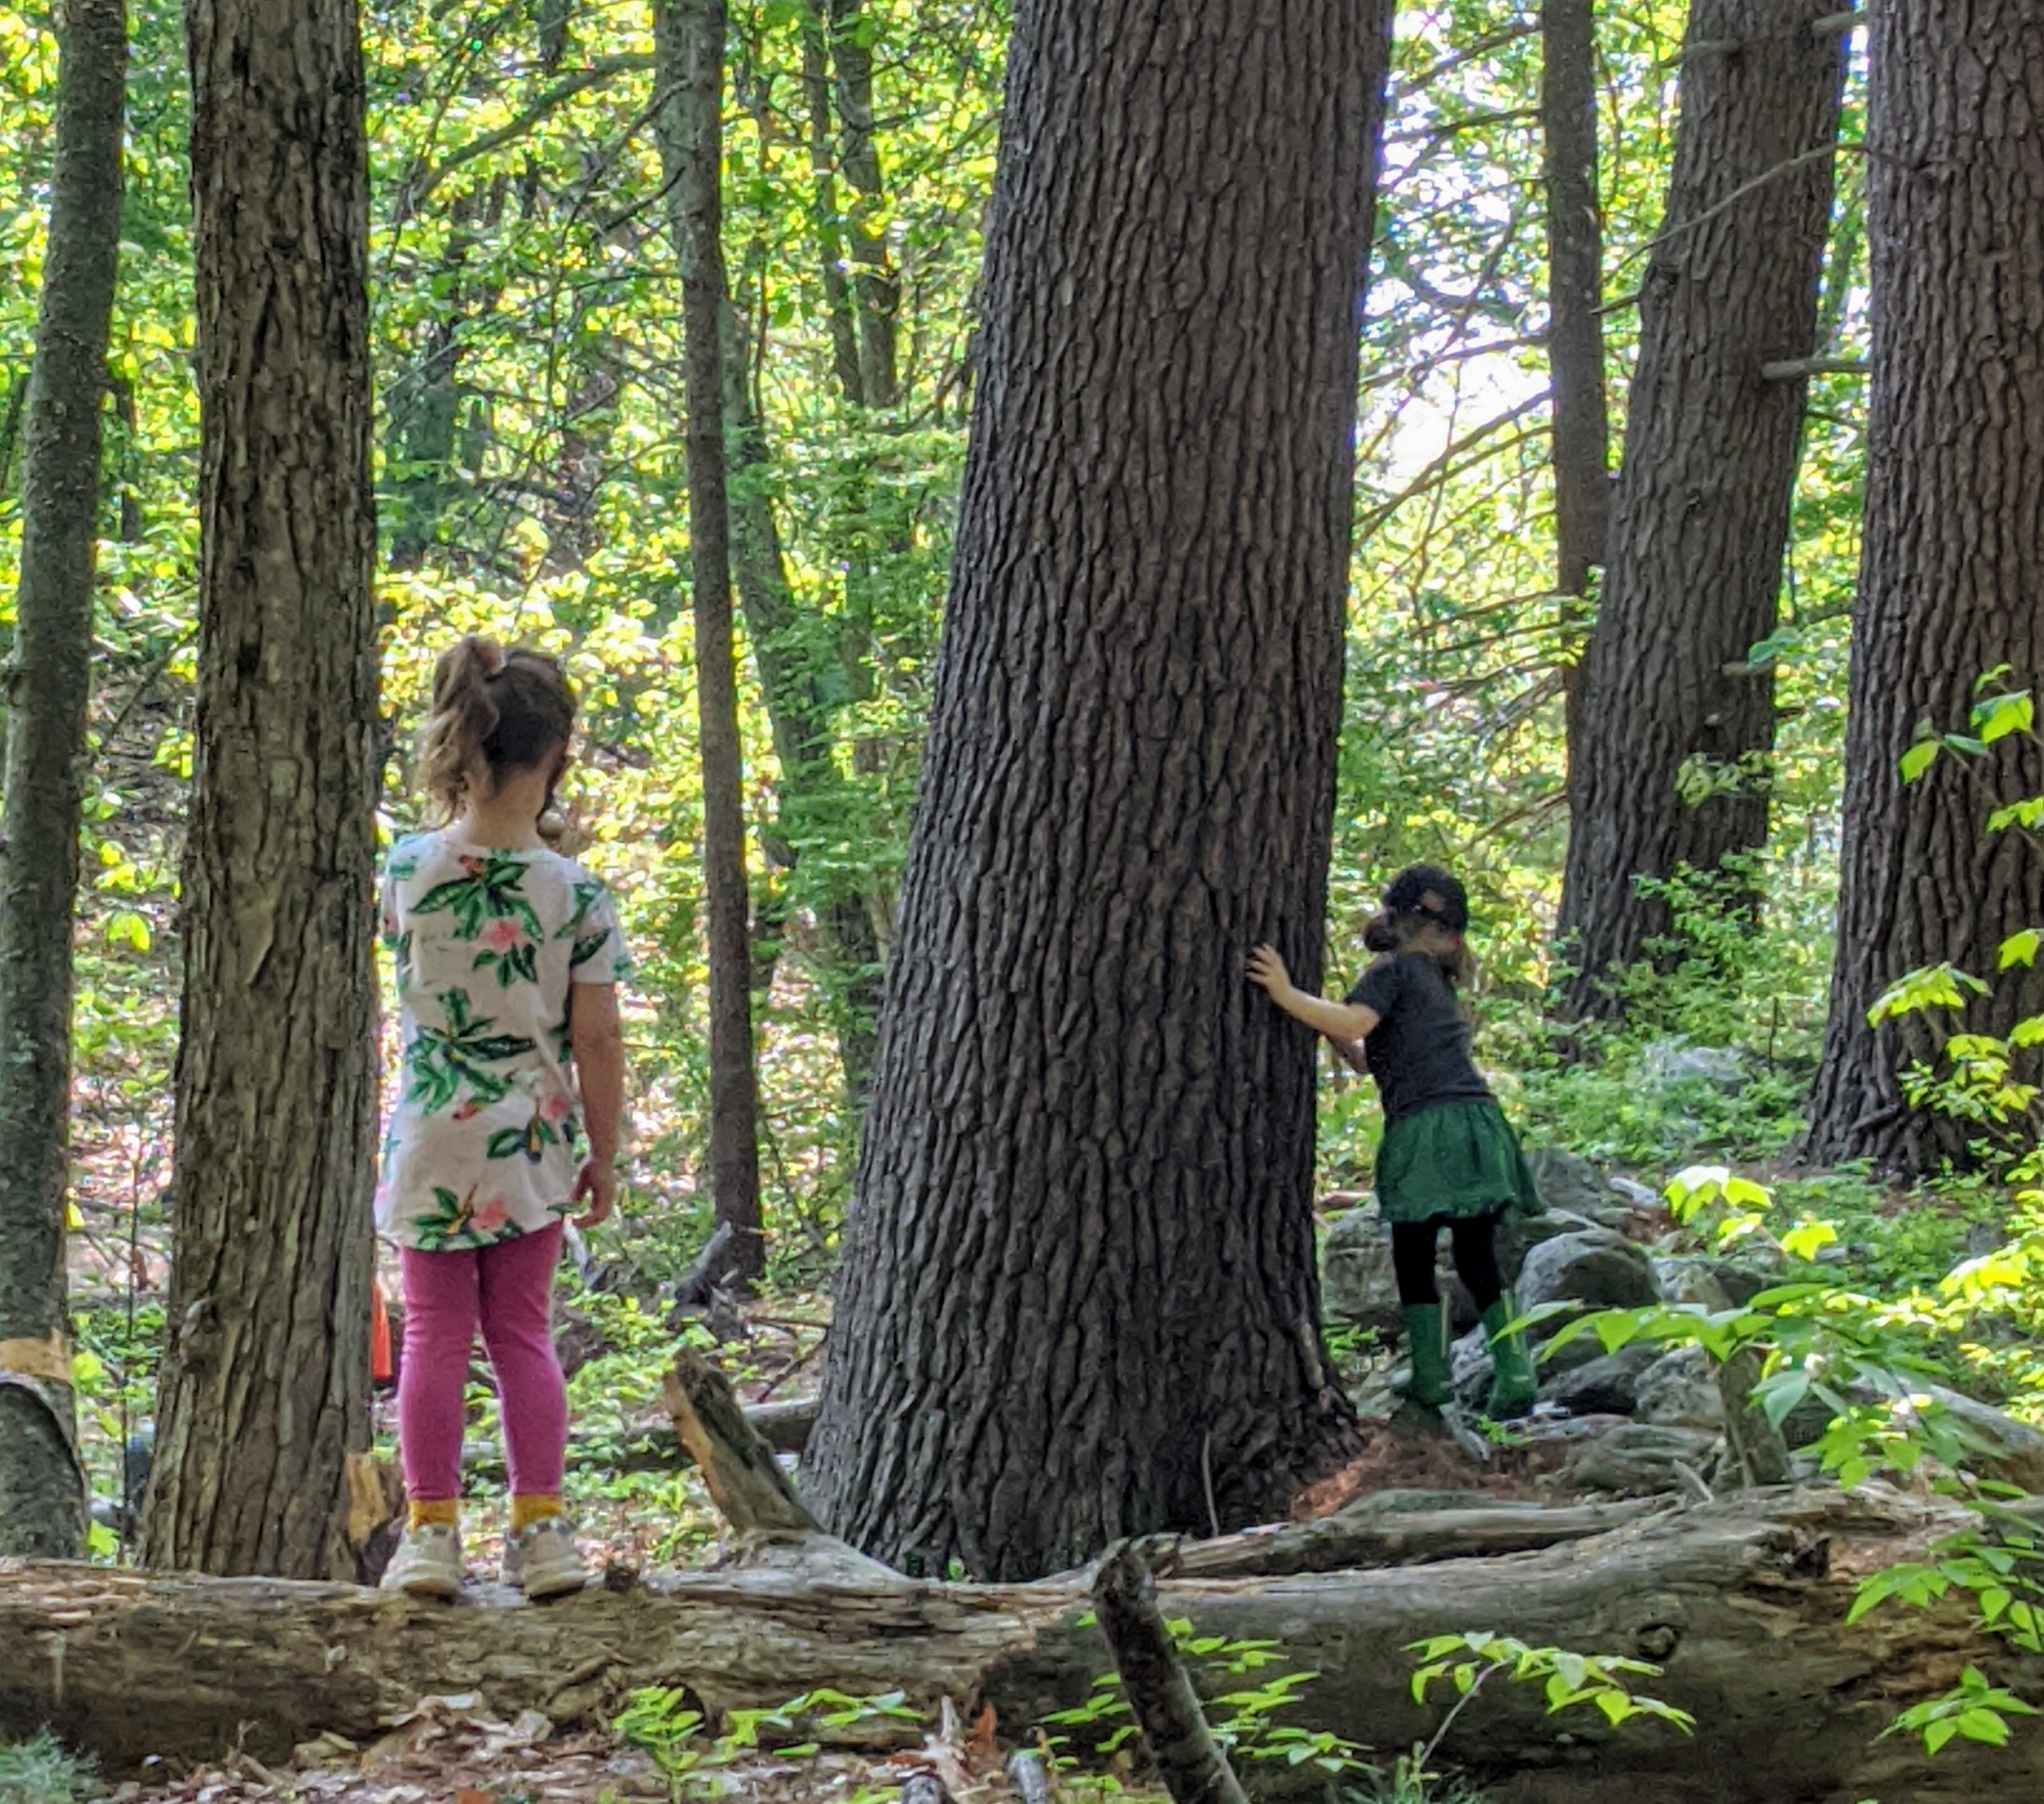 Little Wild Ones – Tuesday – Spring '22 Session II